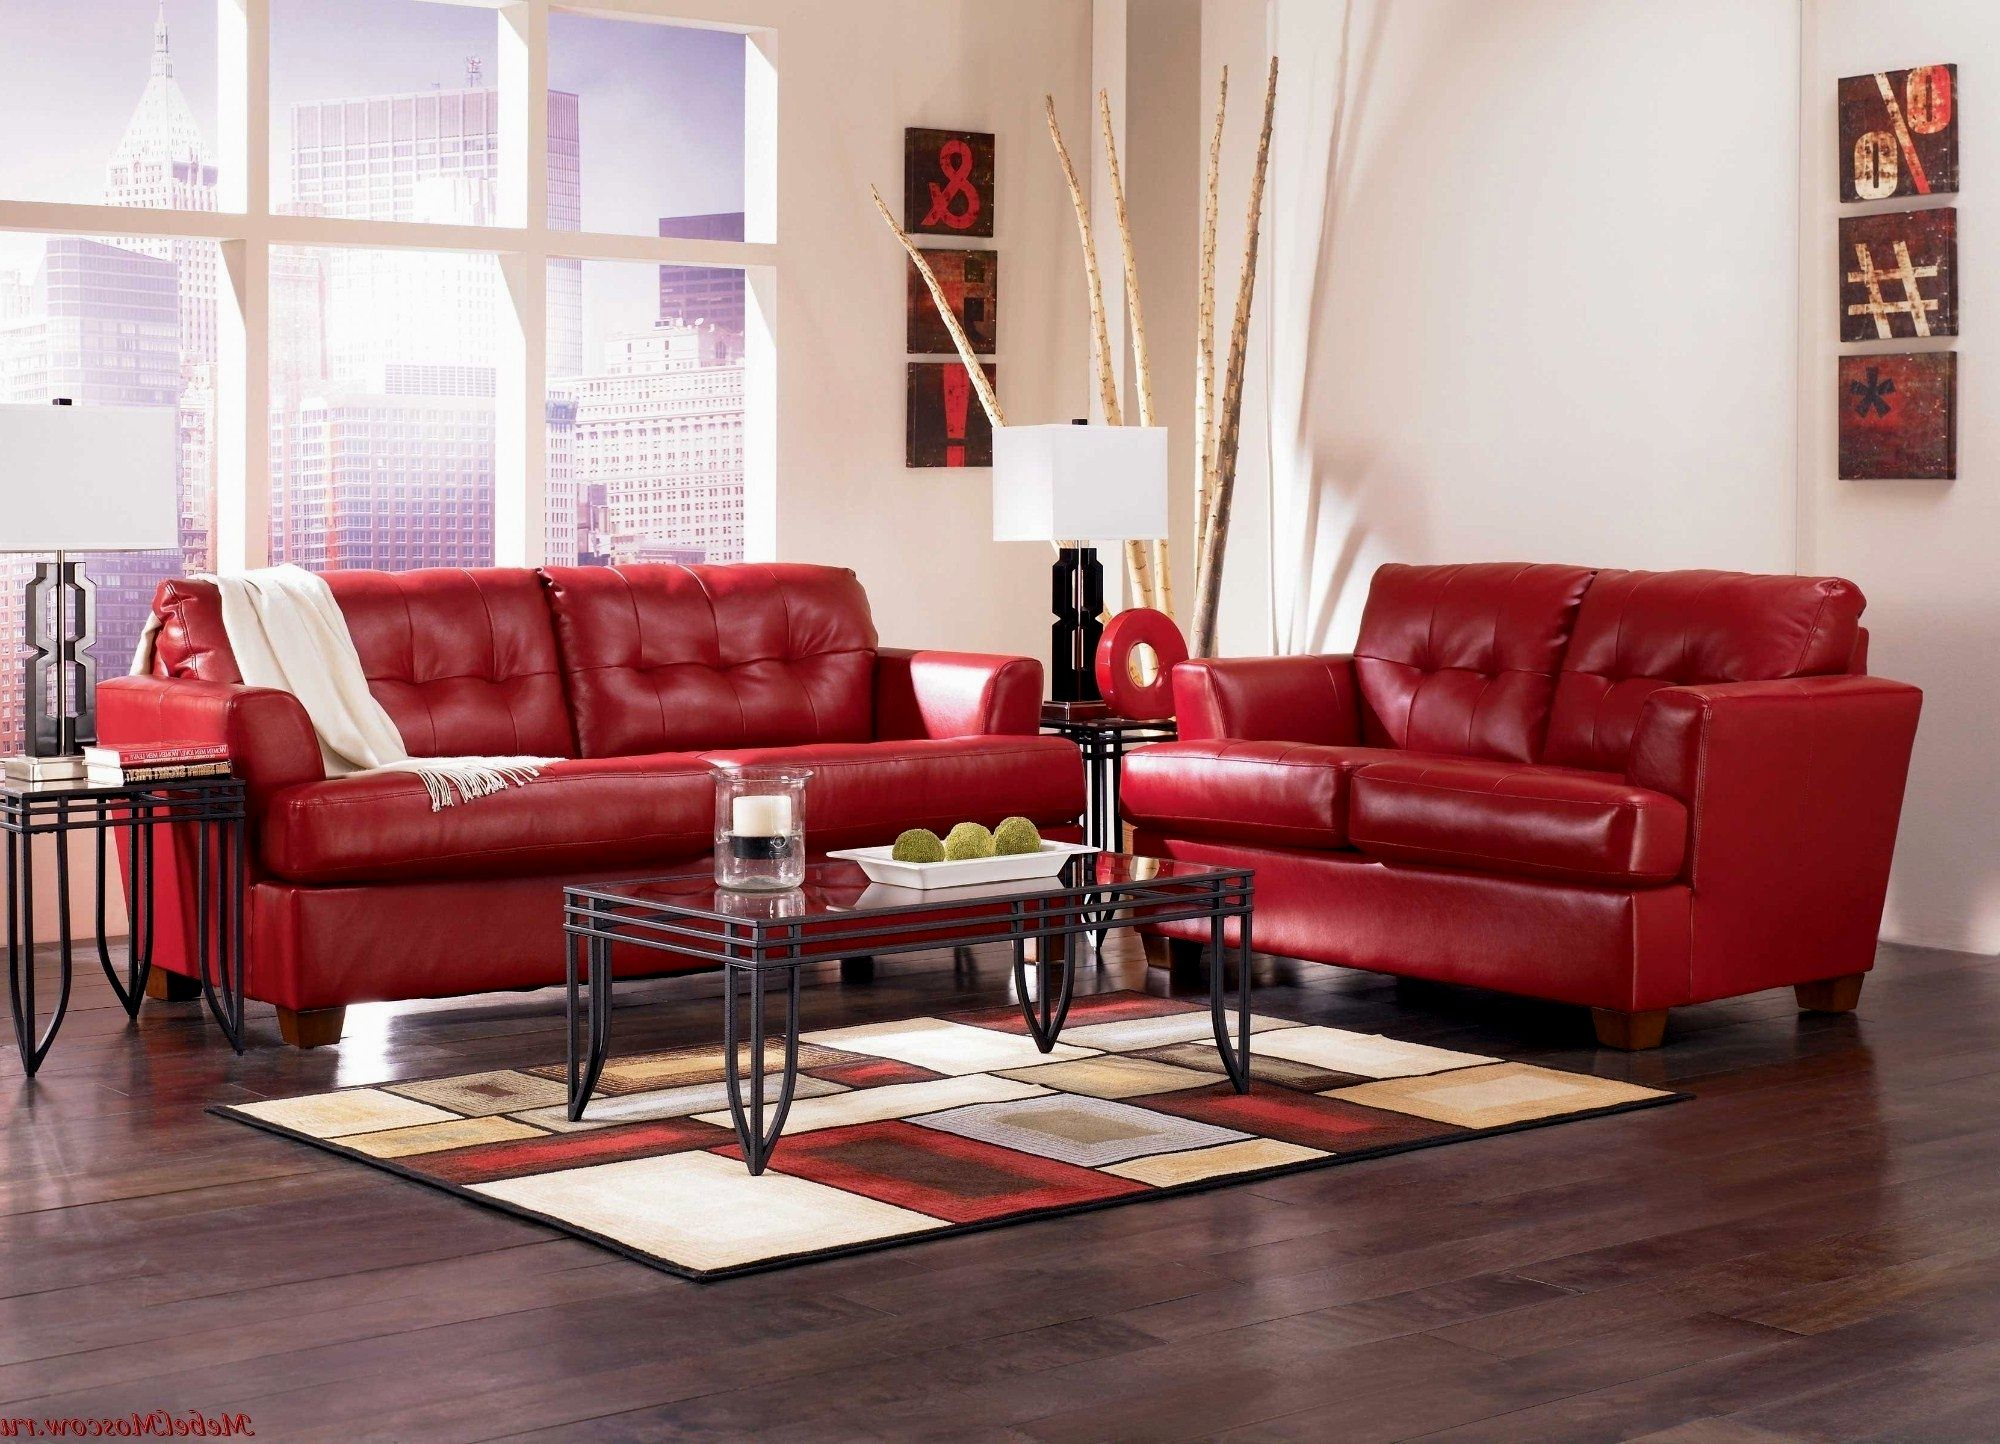 lovely button tufted sofa pattern-Cute button Tufted sofa Wallpaper